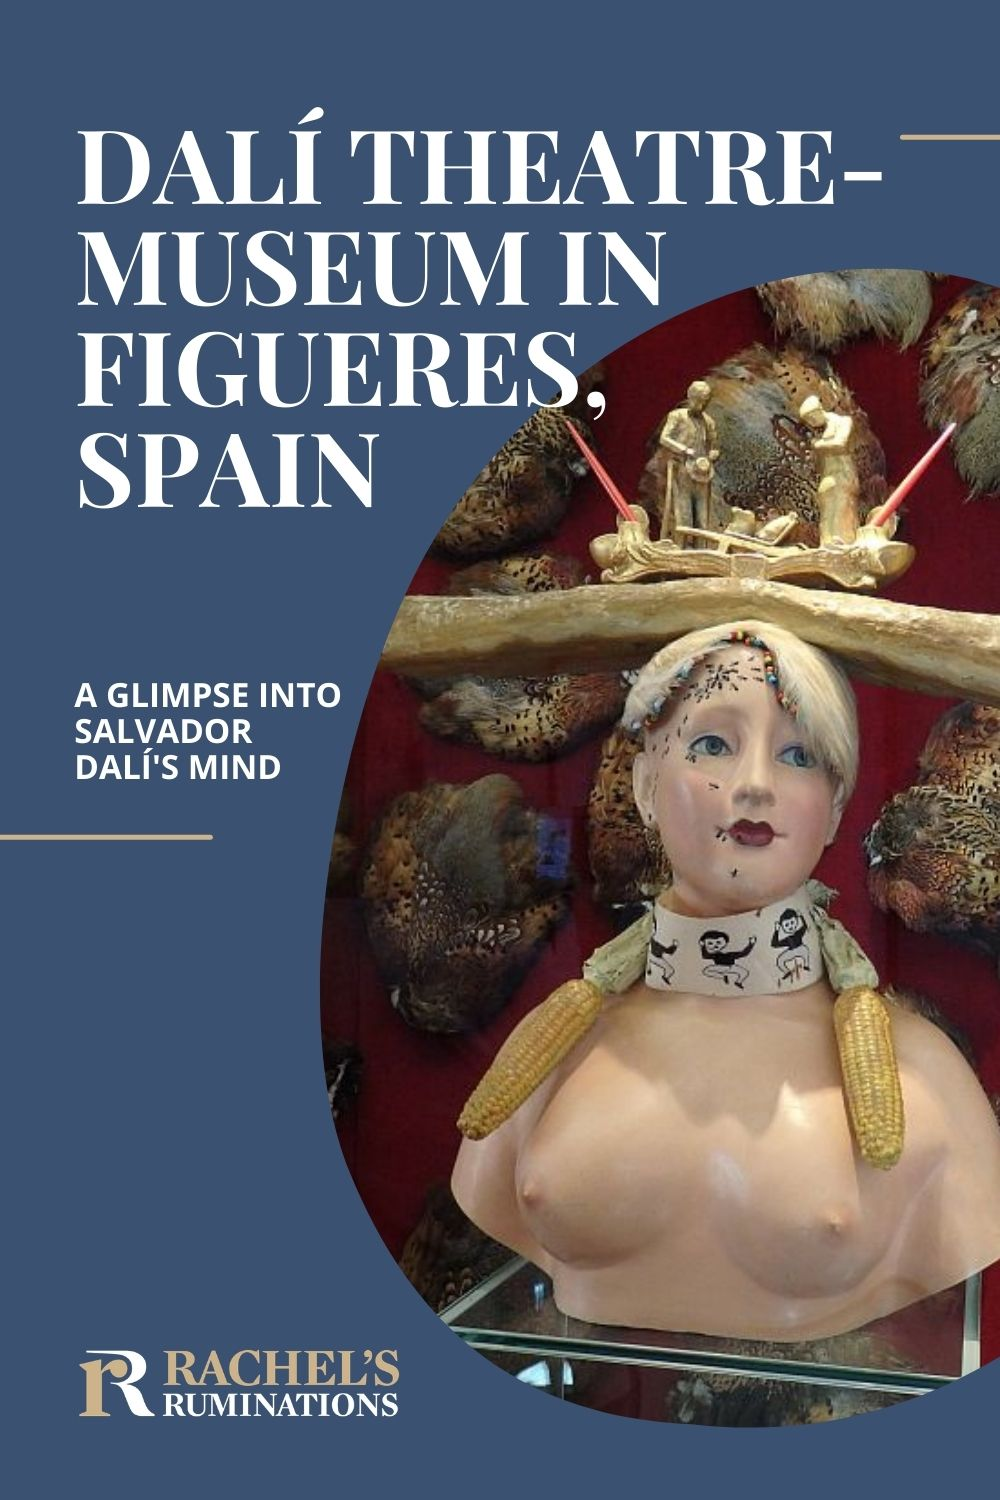 At the Dalí Theatre-Museum in Figueres, Spain, you can experience the bizarre and sometimes nightmarish genius of Salvador Dali. Read about it here! via @rachelsruminations